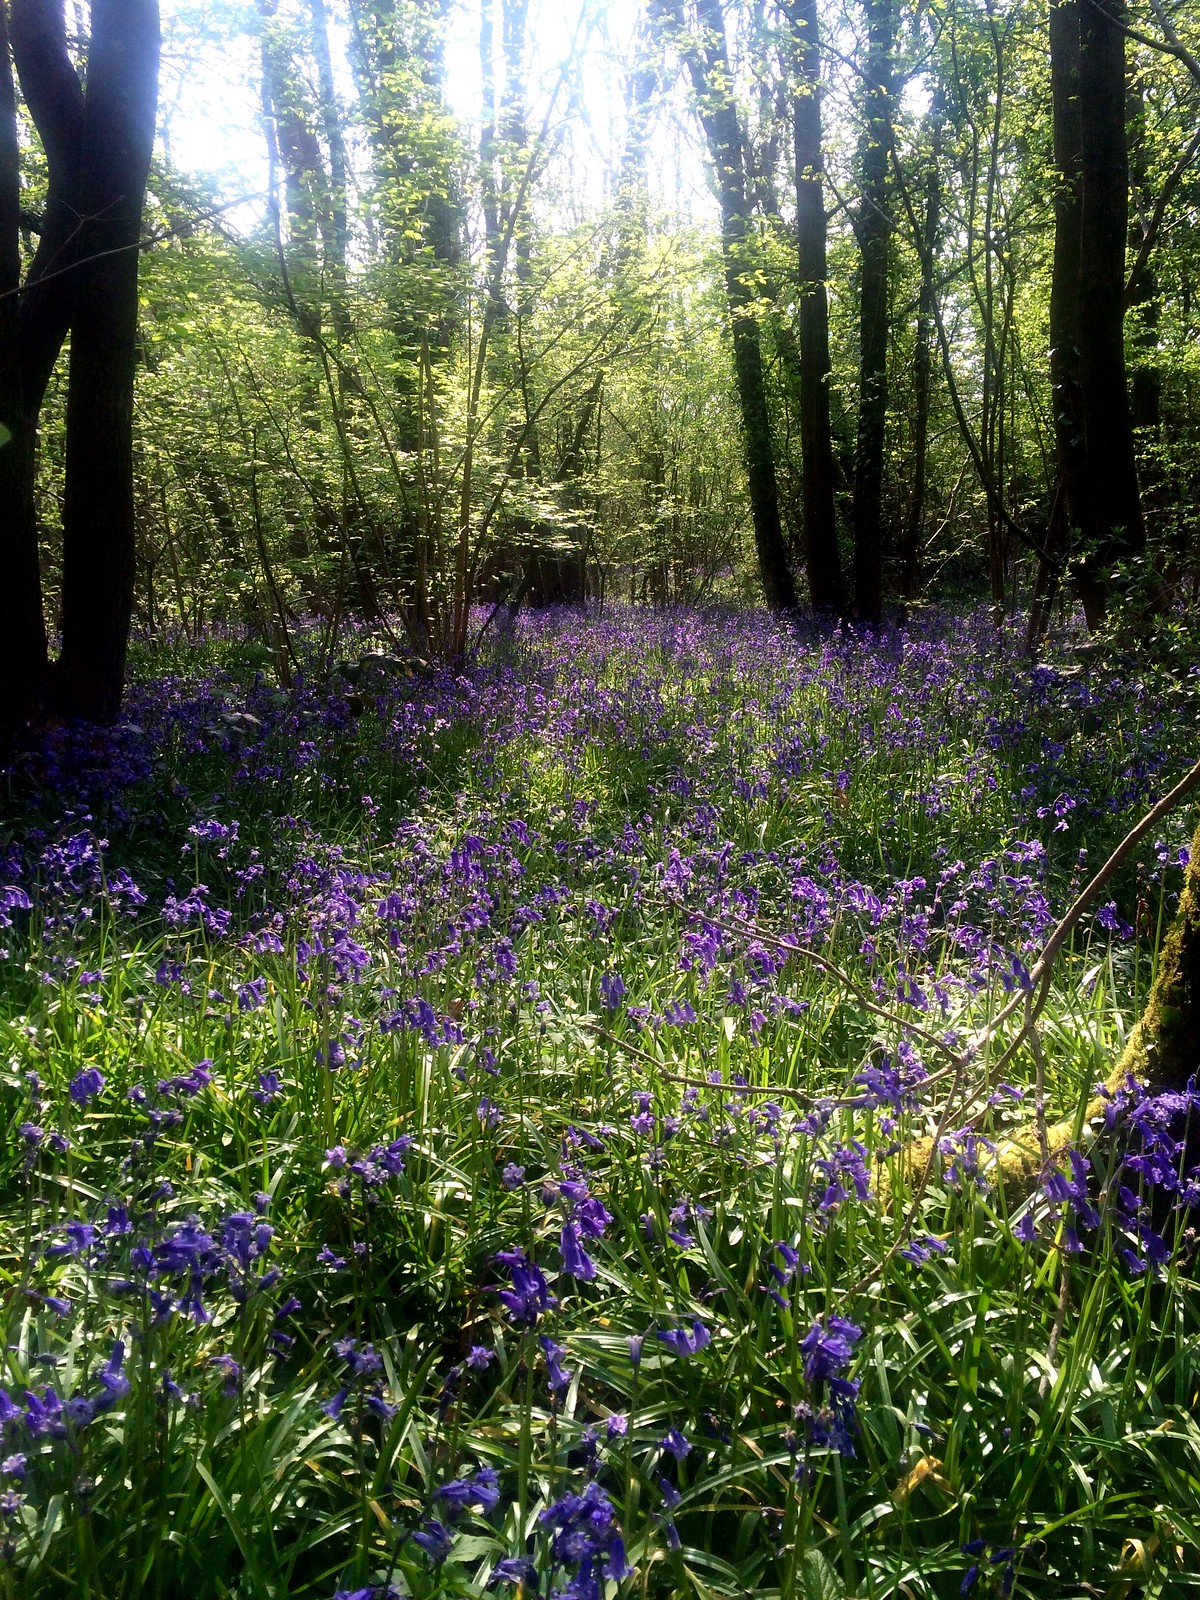 May 7, 2016: Hassocks to Lewes Bluebells in Butcher's Wood, Hassocks